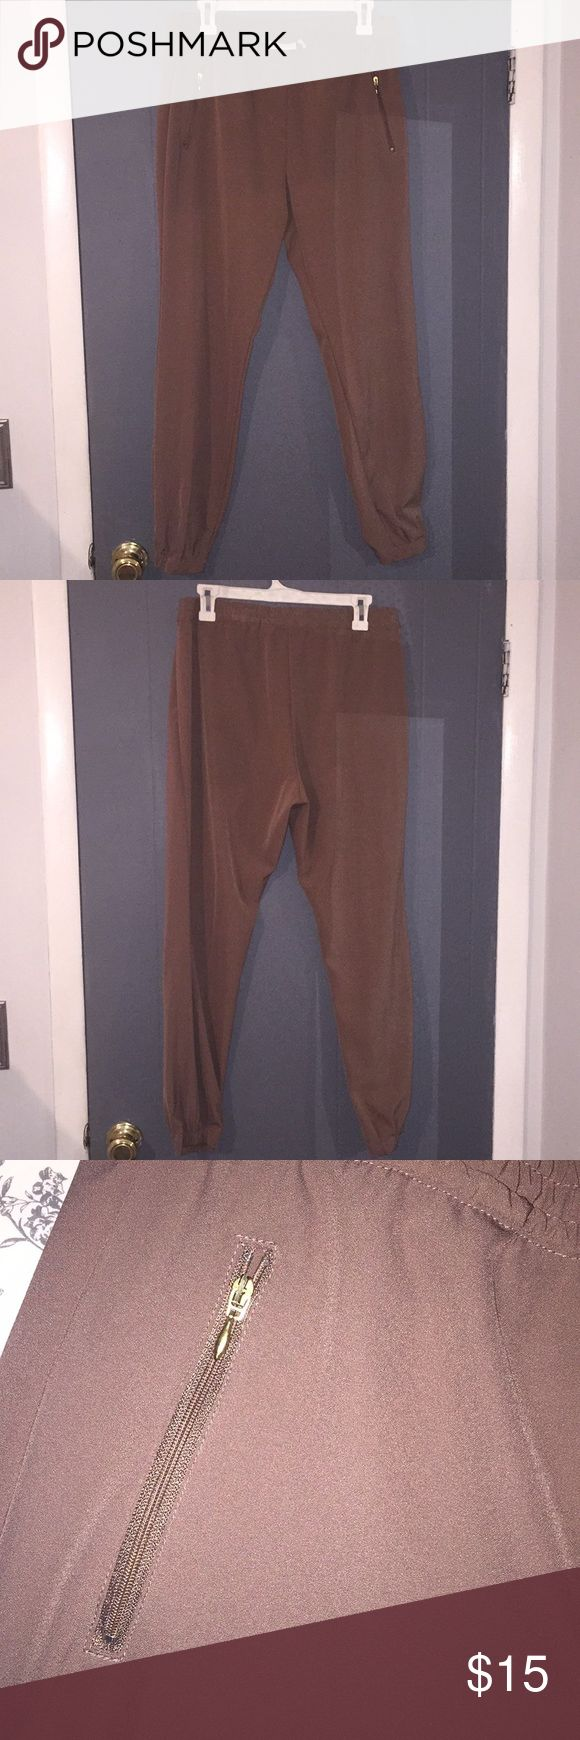 H&M Brown Joggers Barely worn, great condition! H&M Pants Track Pants & Joggers